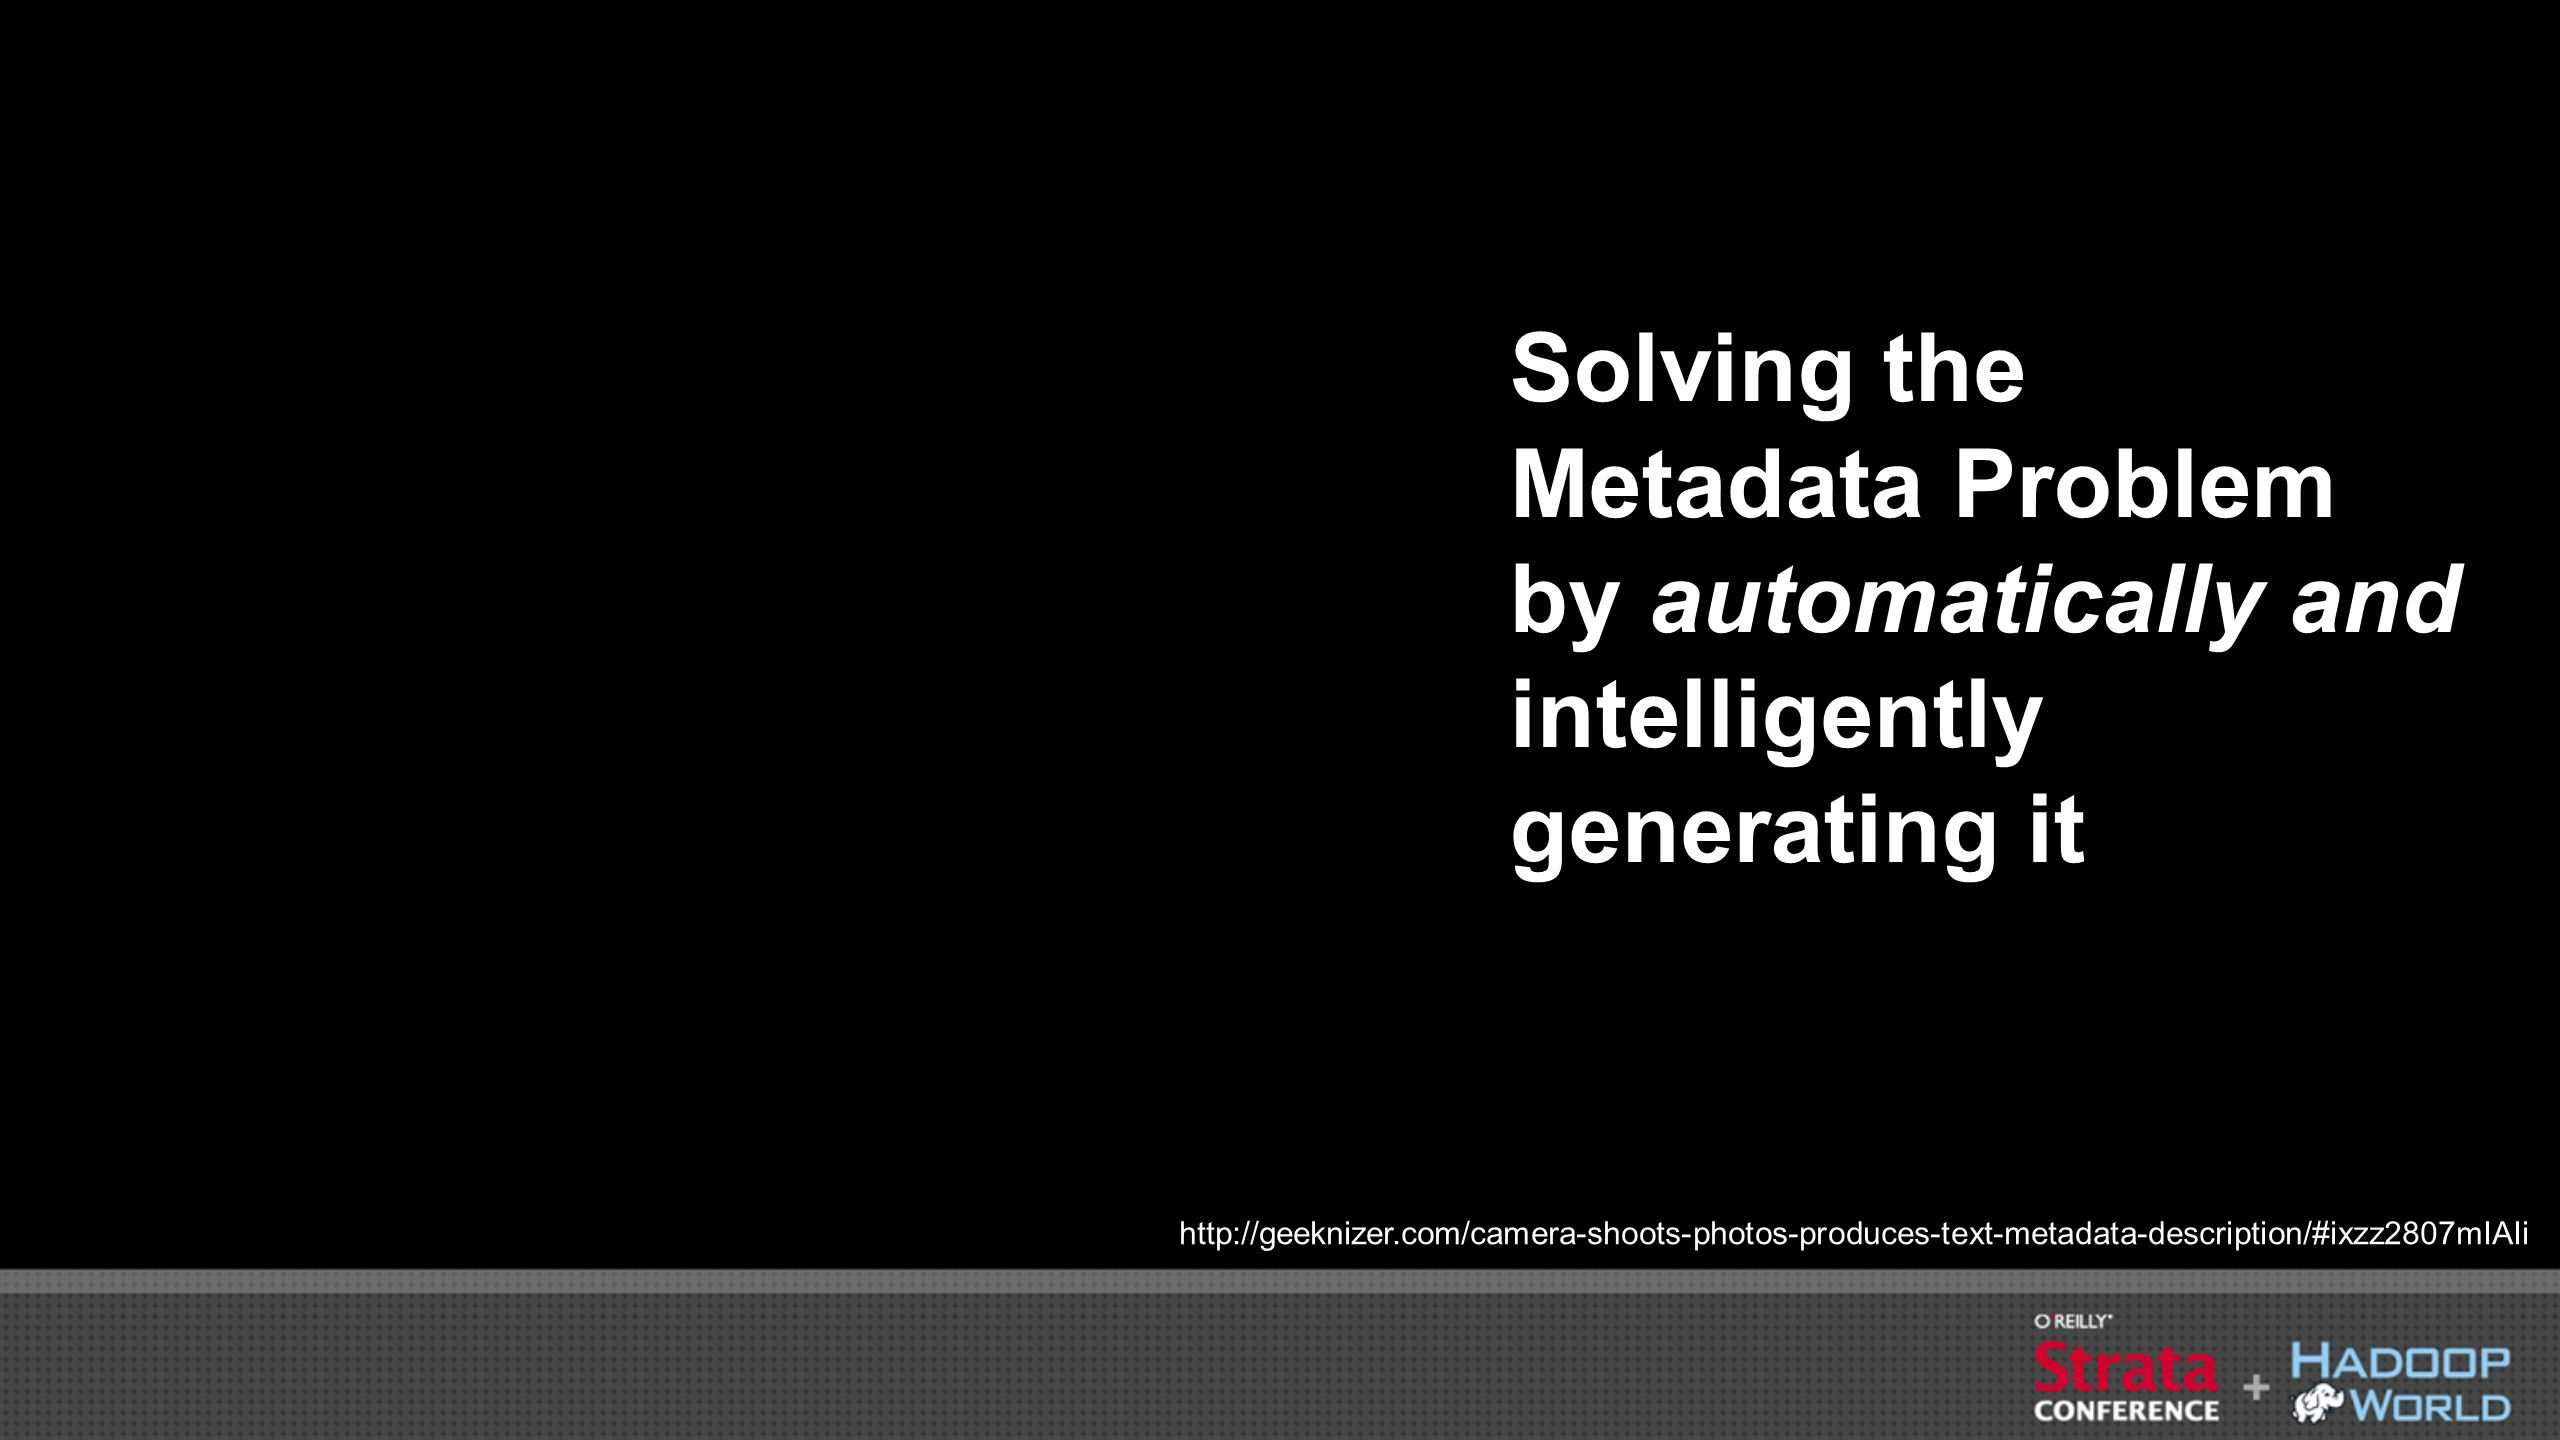 Solving the Metadata Problem by automatically and intelligently generating it http://geeknizer.com/camera-shoots-photos-produces-text-metadata-description/#ixzz2807mIAIi